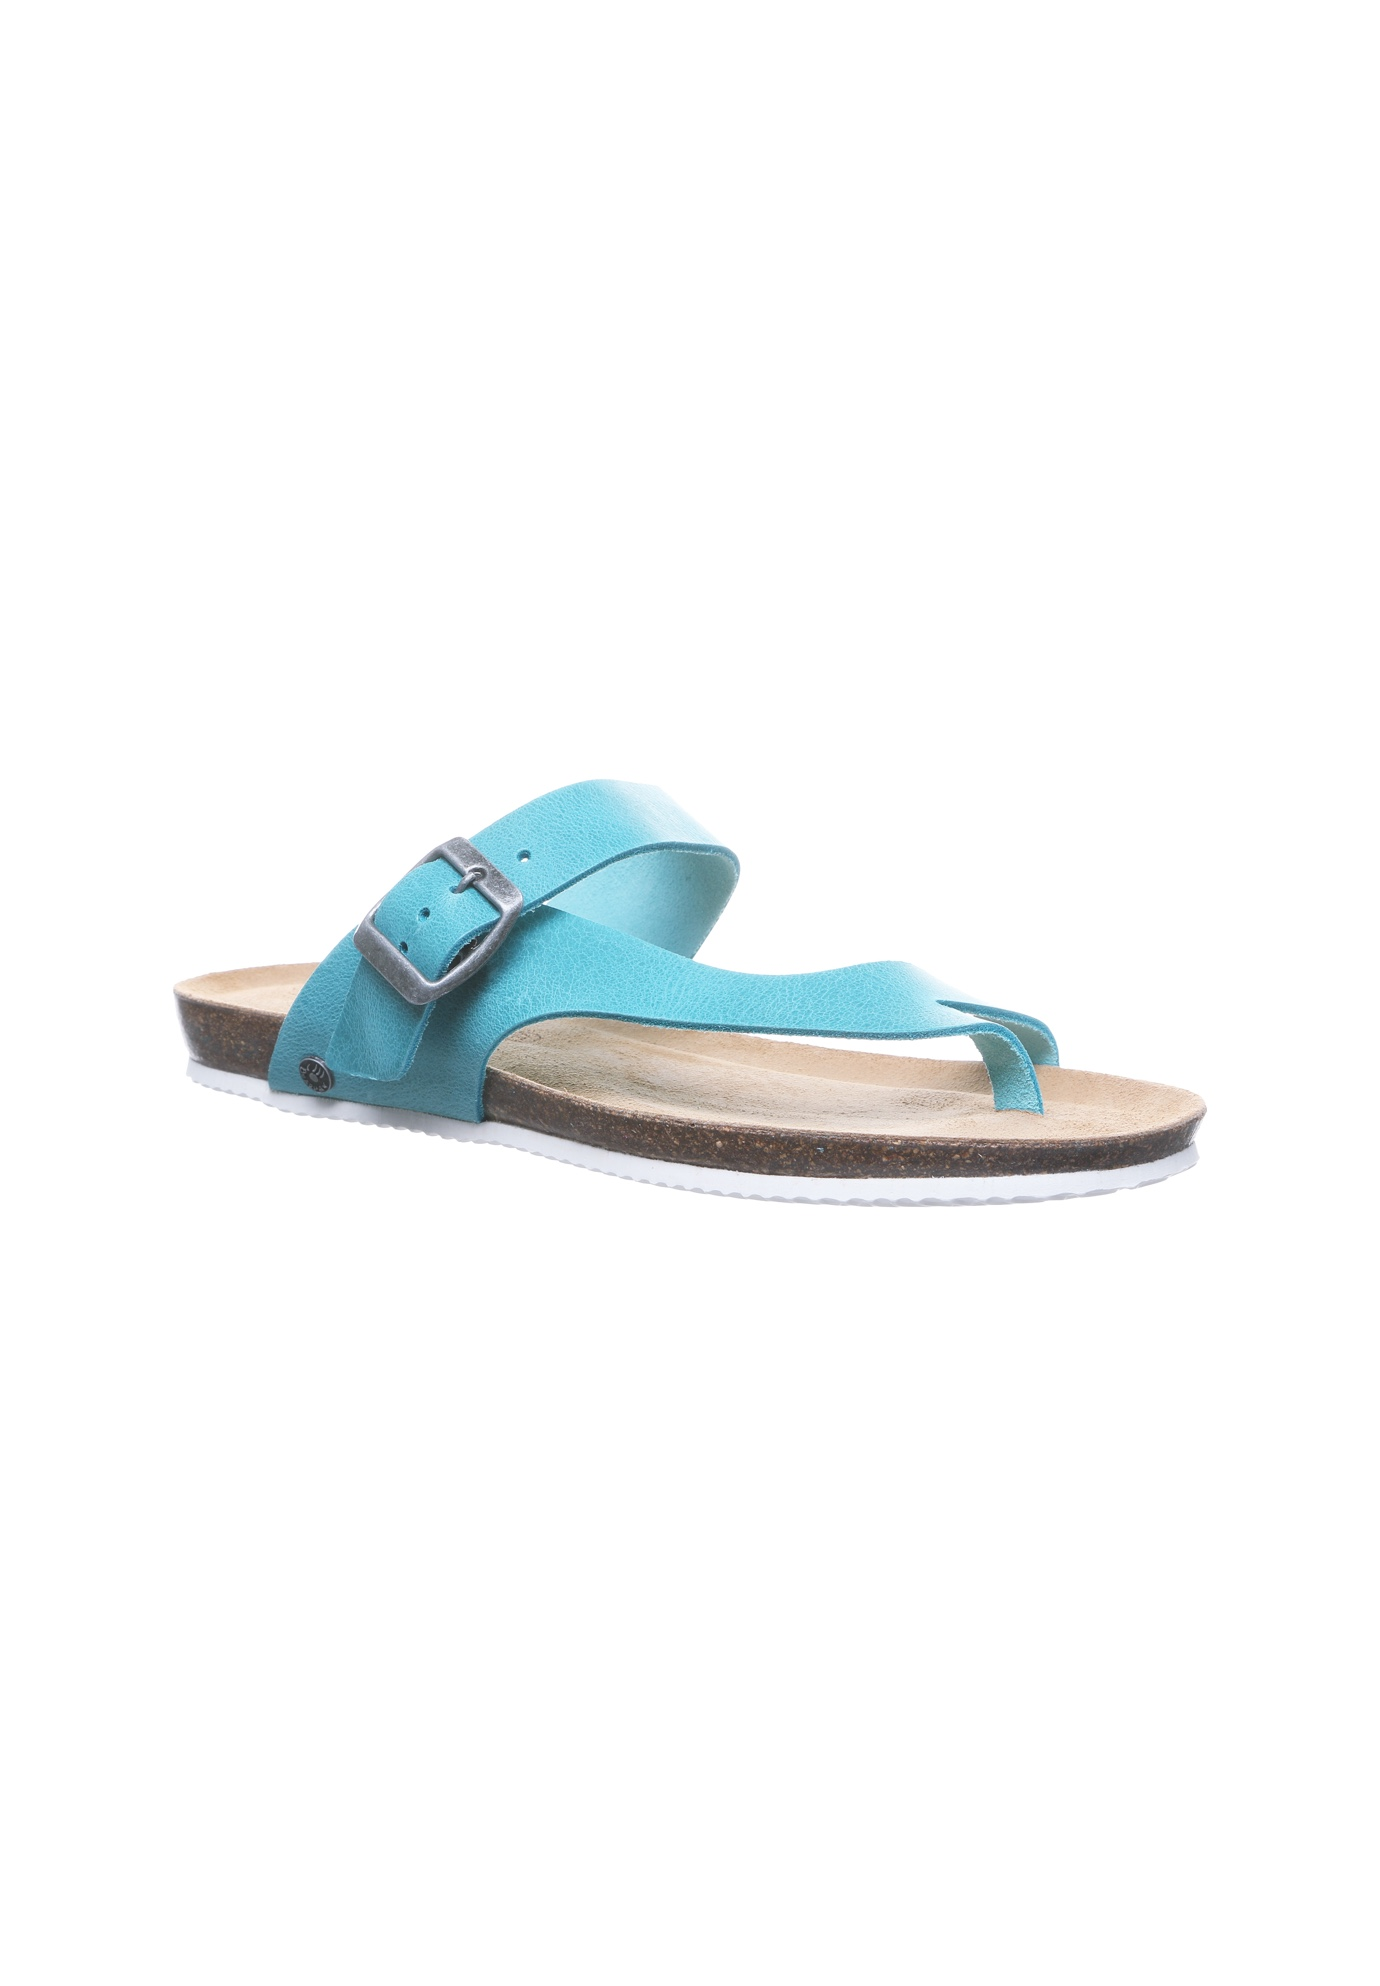 Oceania Sandals by Bearpaw,